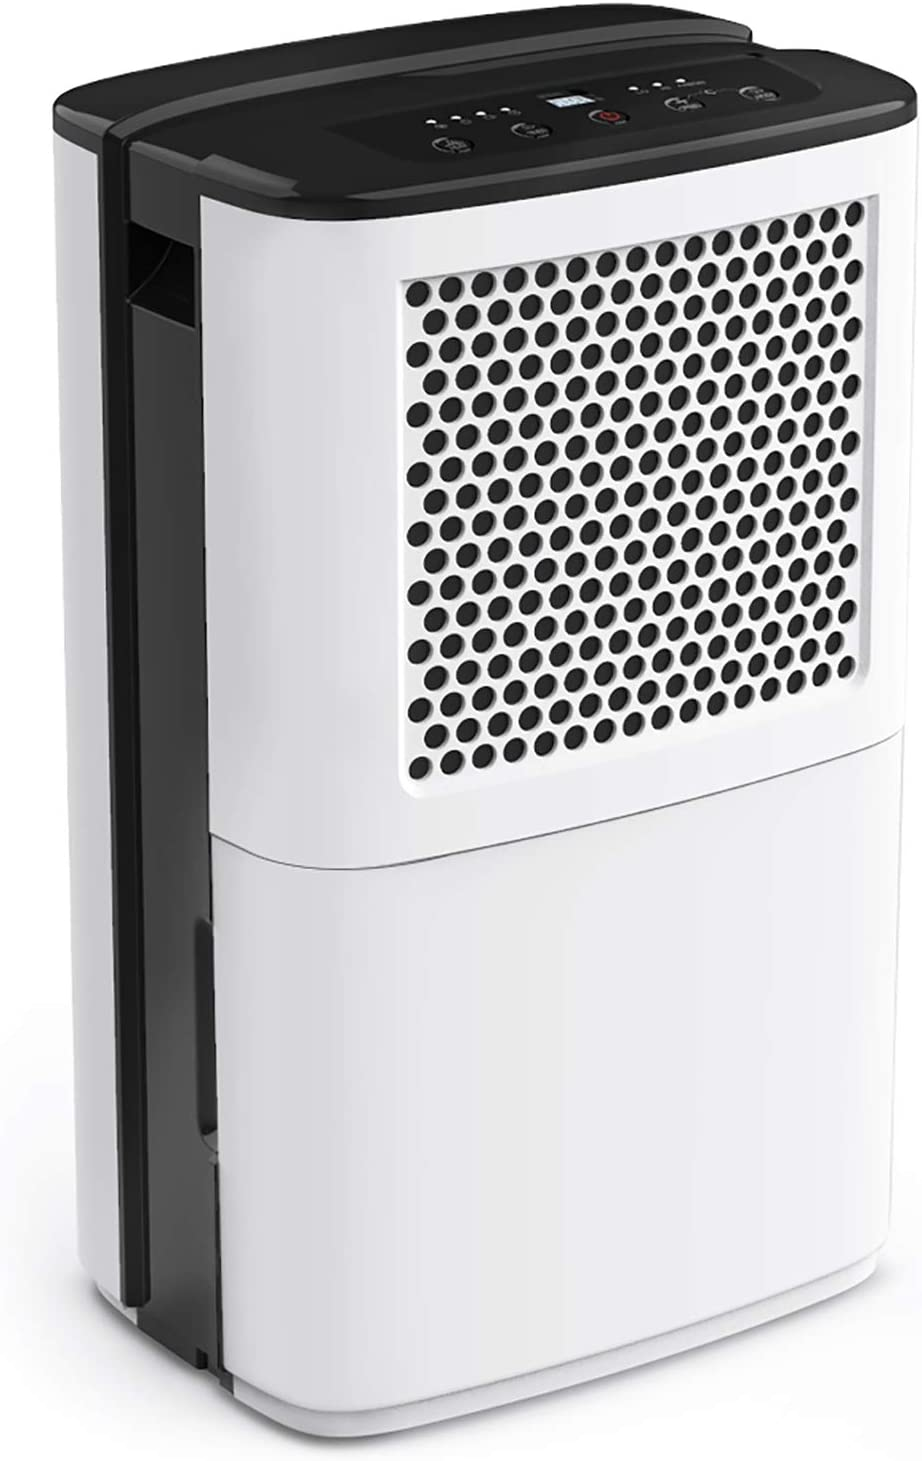 AIRPLUS 50 Pints 3 000 Sq. Dehumidifier Spaces latest Tampa Mall Medium for Ft. an